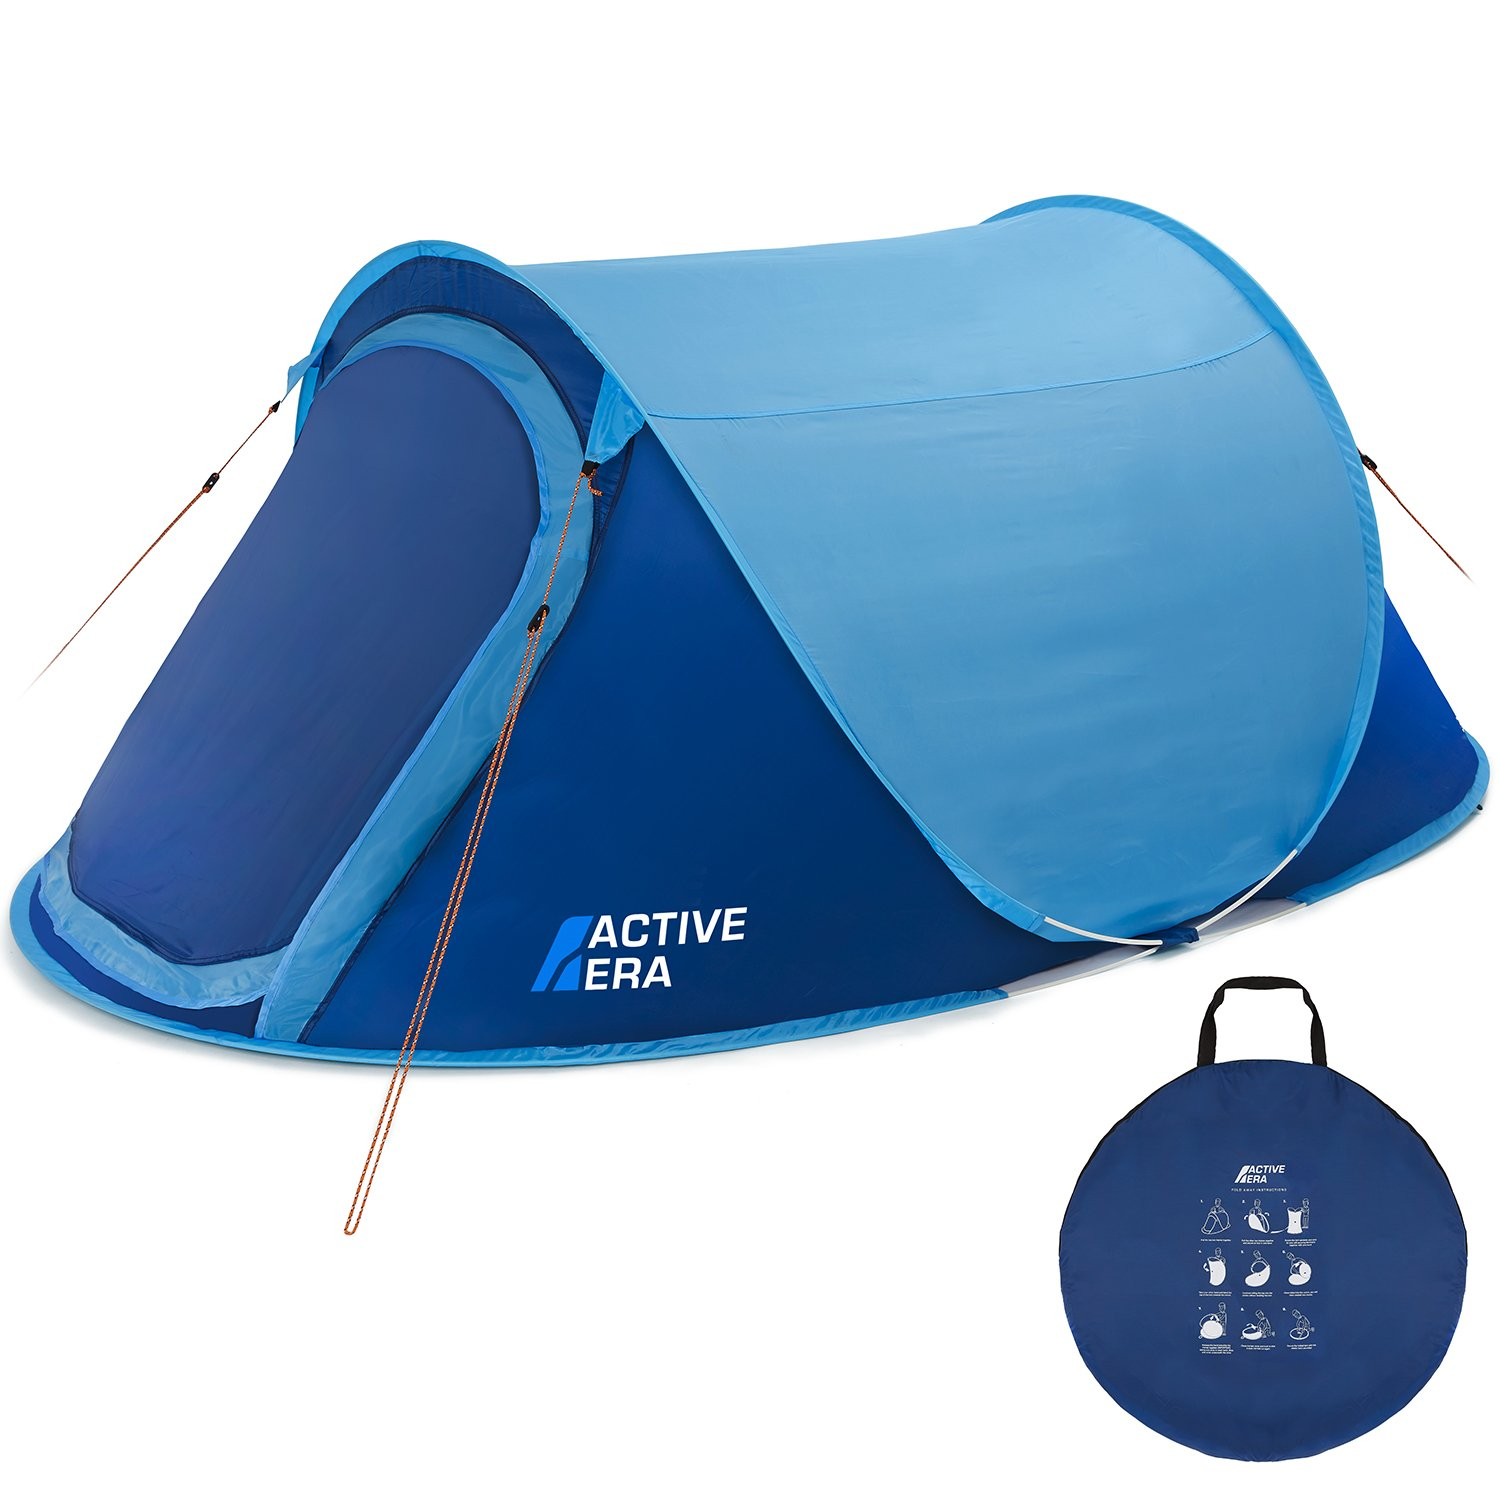 Active Era® Large 2 Person Pop Up Tent - Water Resistant Ventilated and Durable Amazon.co.uk Sports u0026 Outdoors  sc 1 st  Amazon UK & Active Era® Large 2 Person Pop Up Tent - Water Resistant ...